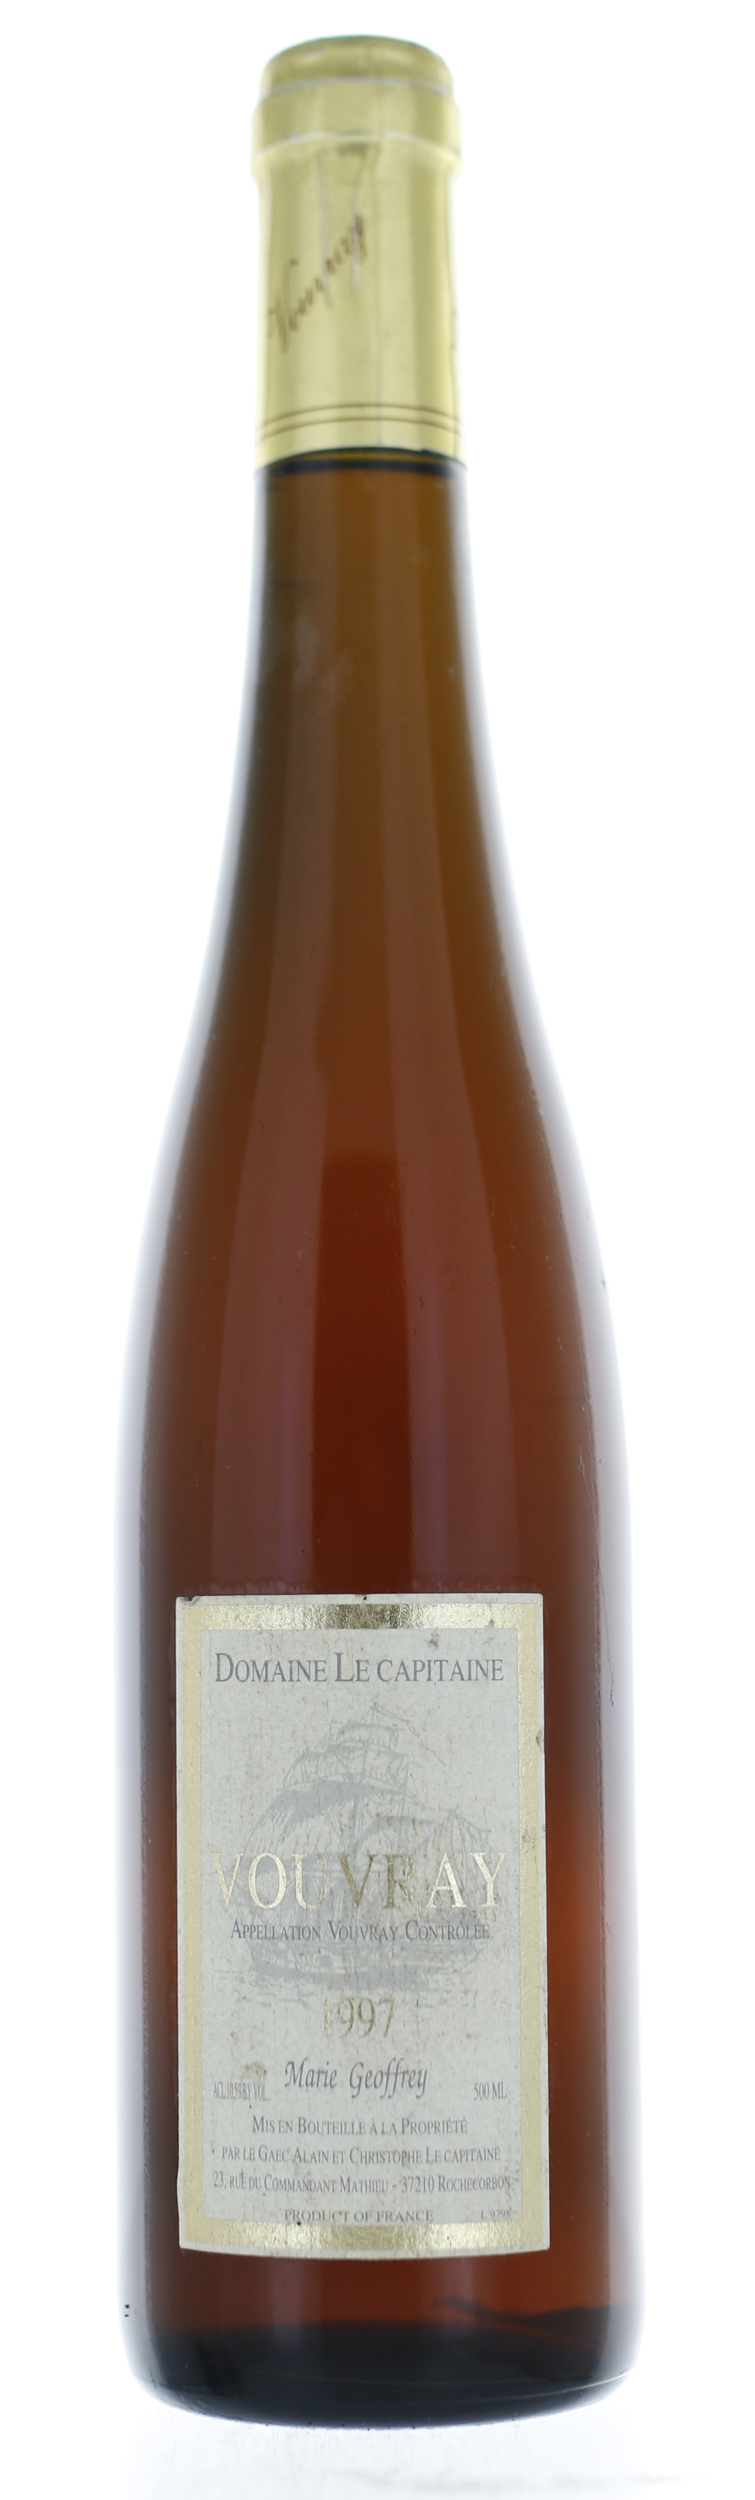 Vouvray - Domaine le Capitaine Vouvray - 1997